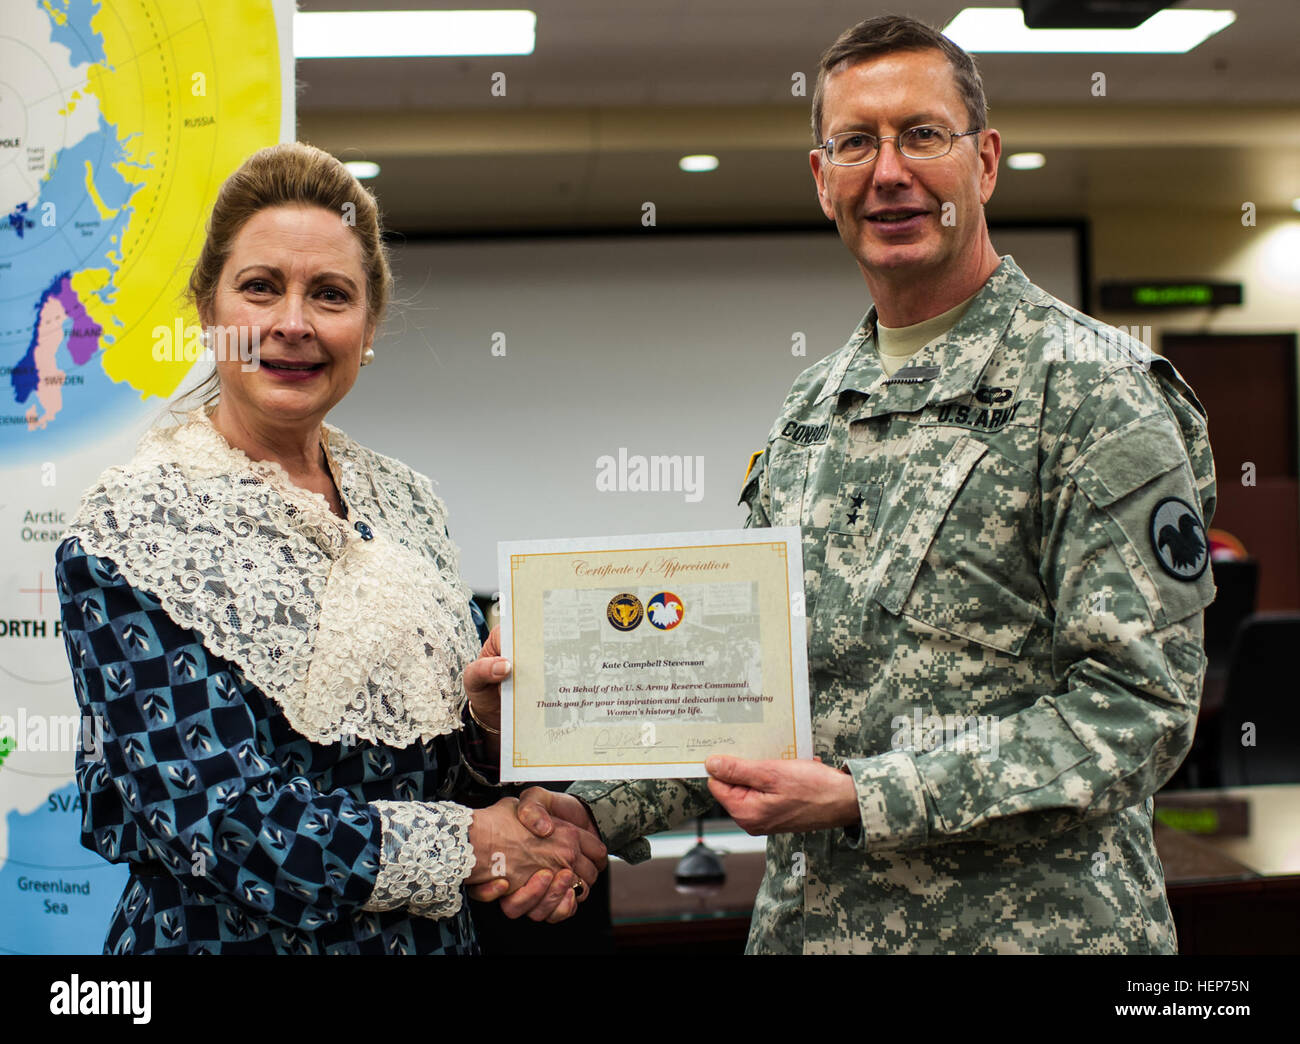 Kate Campbell Stevenson, left, is presented a certificate of appreciation from Maj. Gen. David Conboy, U.S. Army Stock Photo